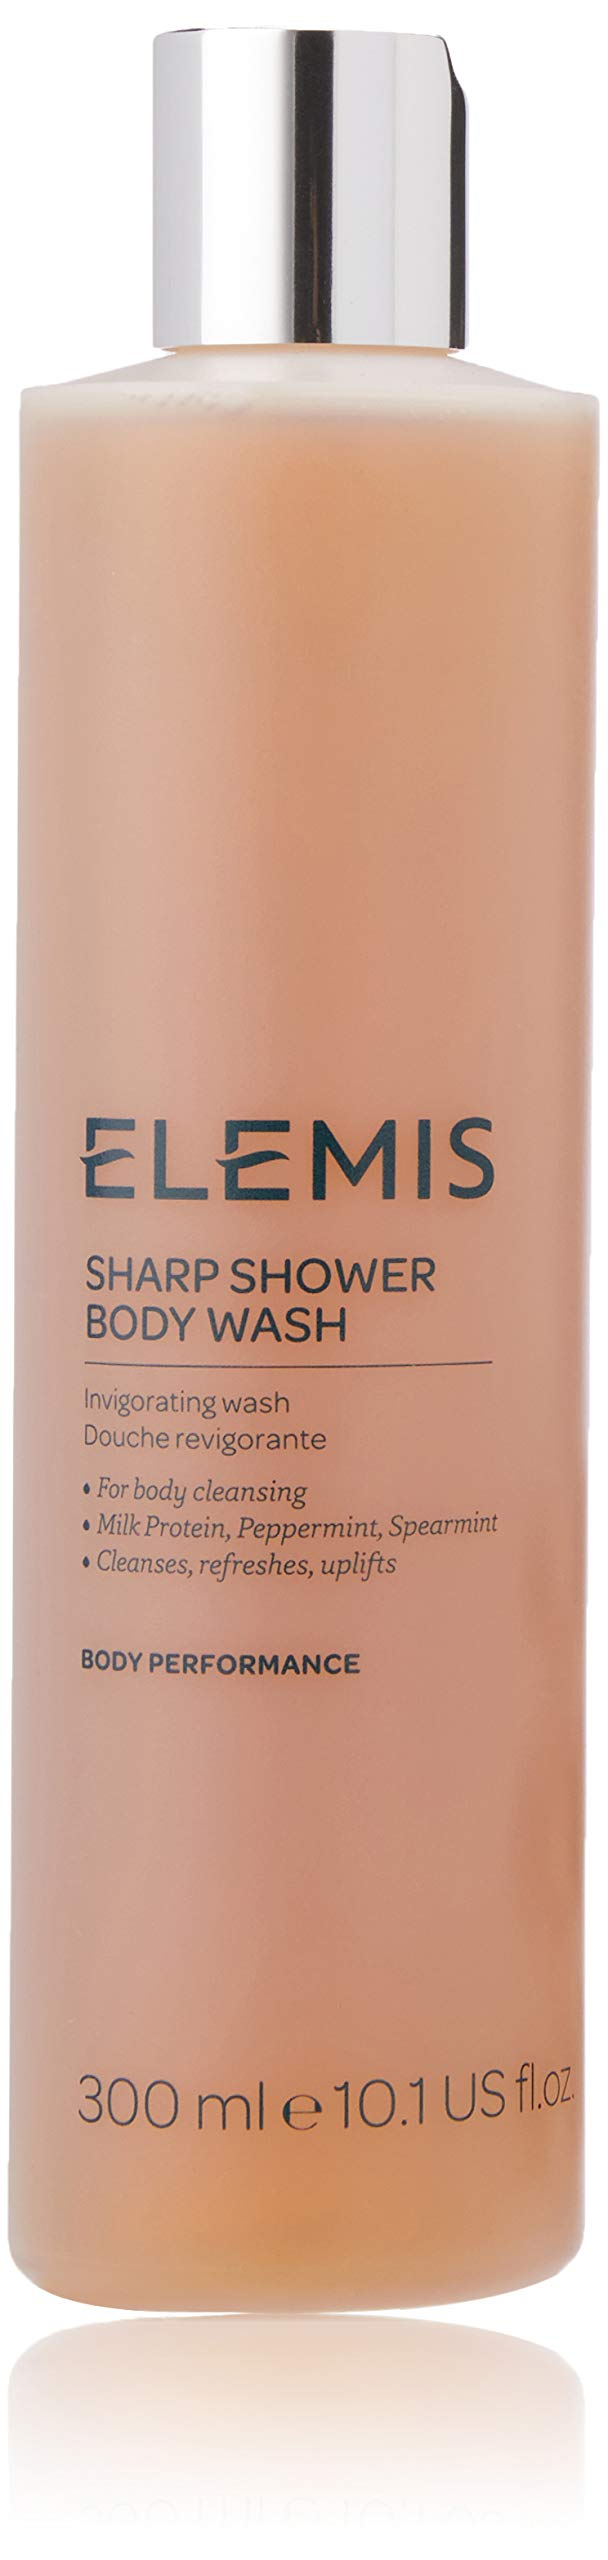 ELEMIS Sharp Shower Body Wash - Invigorating Wash